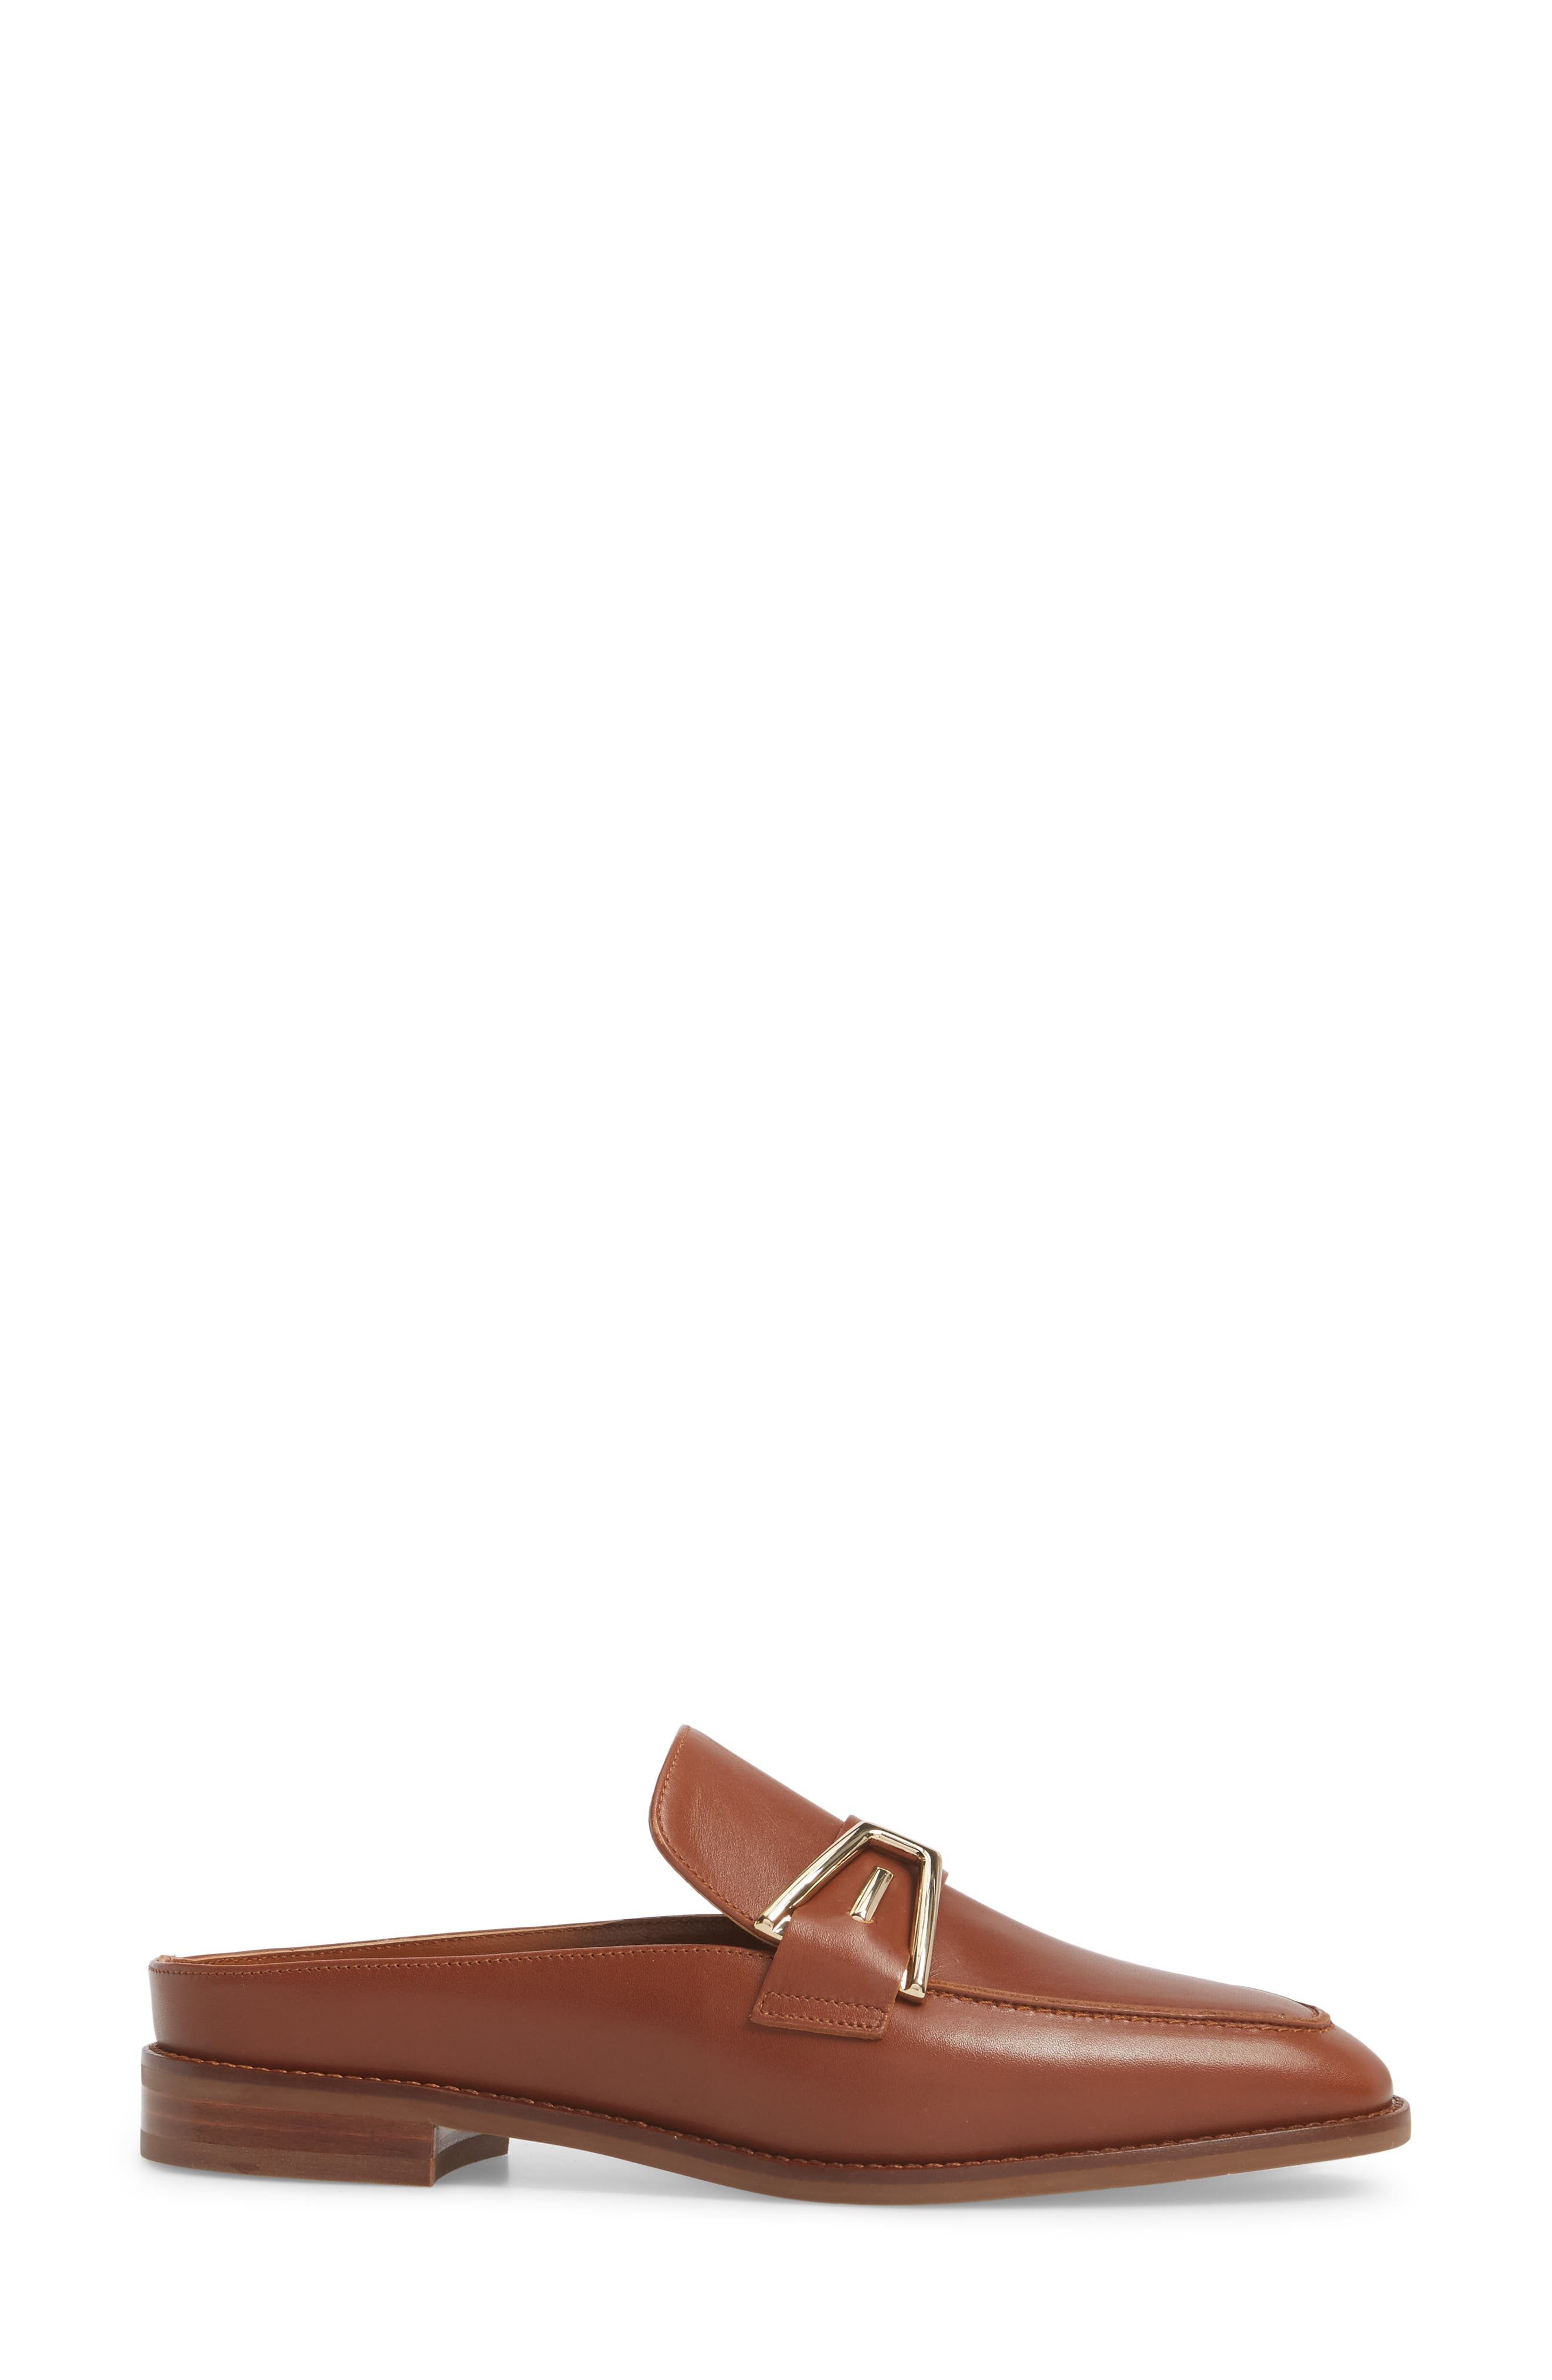 Tosca Loafer Mule,                             Alternate thumbnail 5, color,